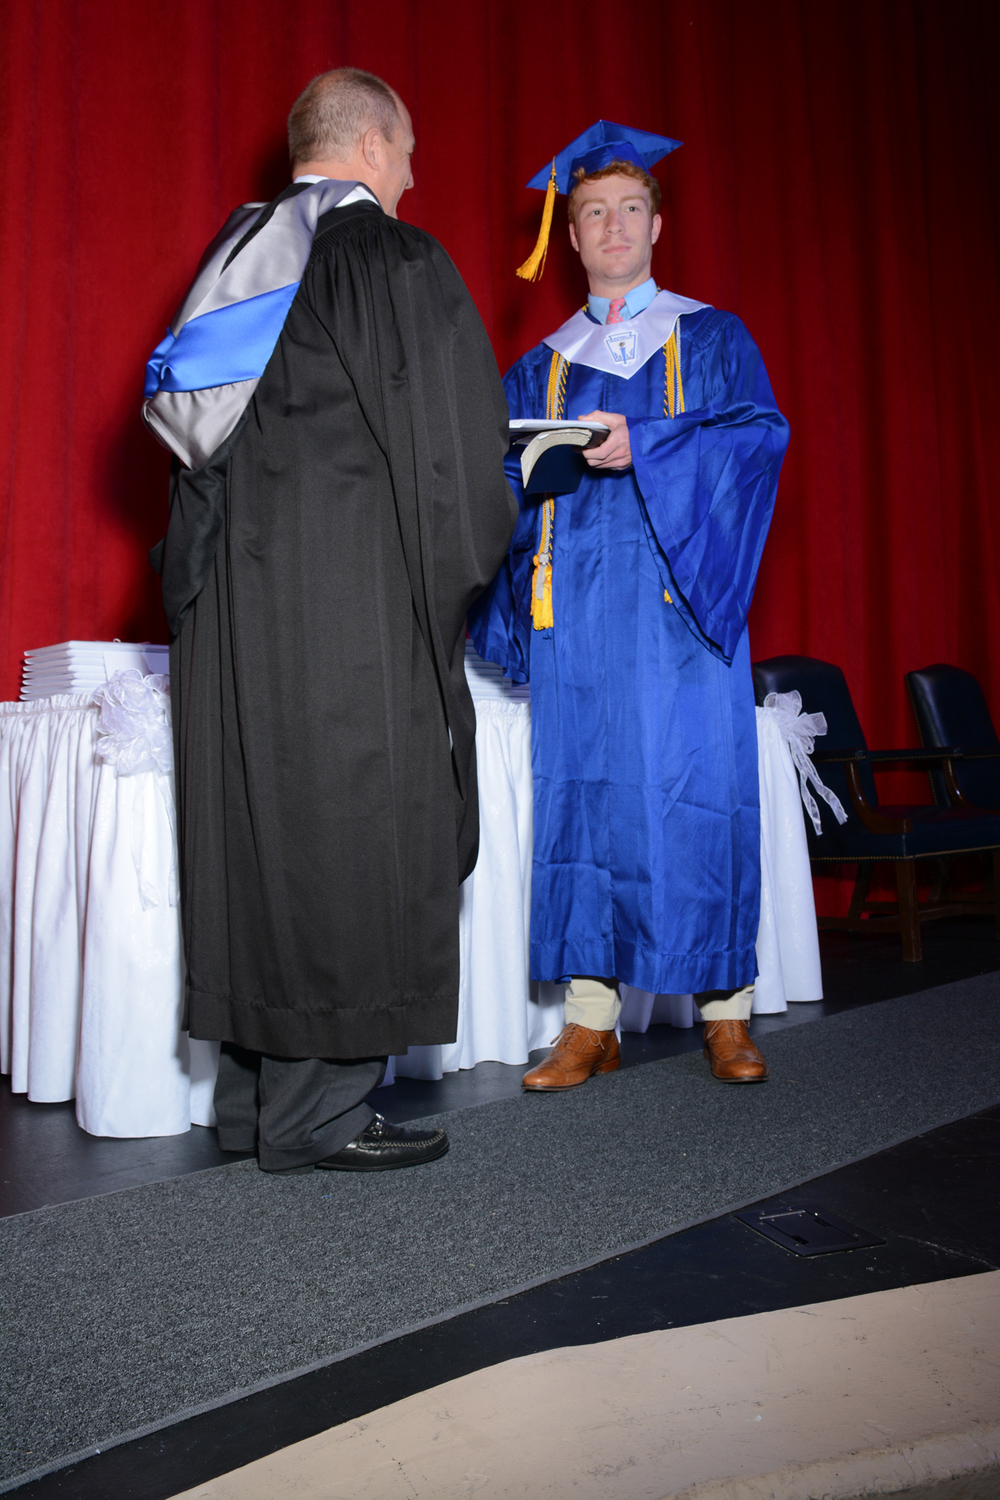 May16 GraduationPhotos15.jpg